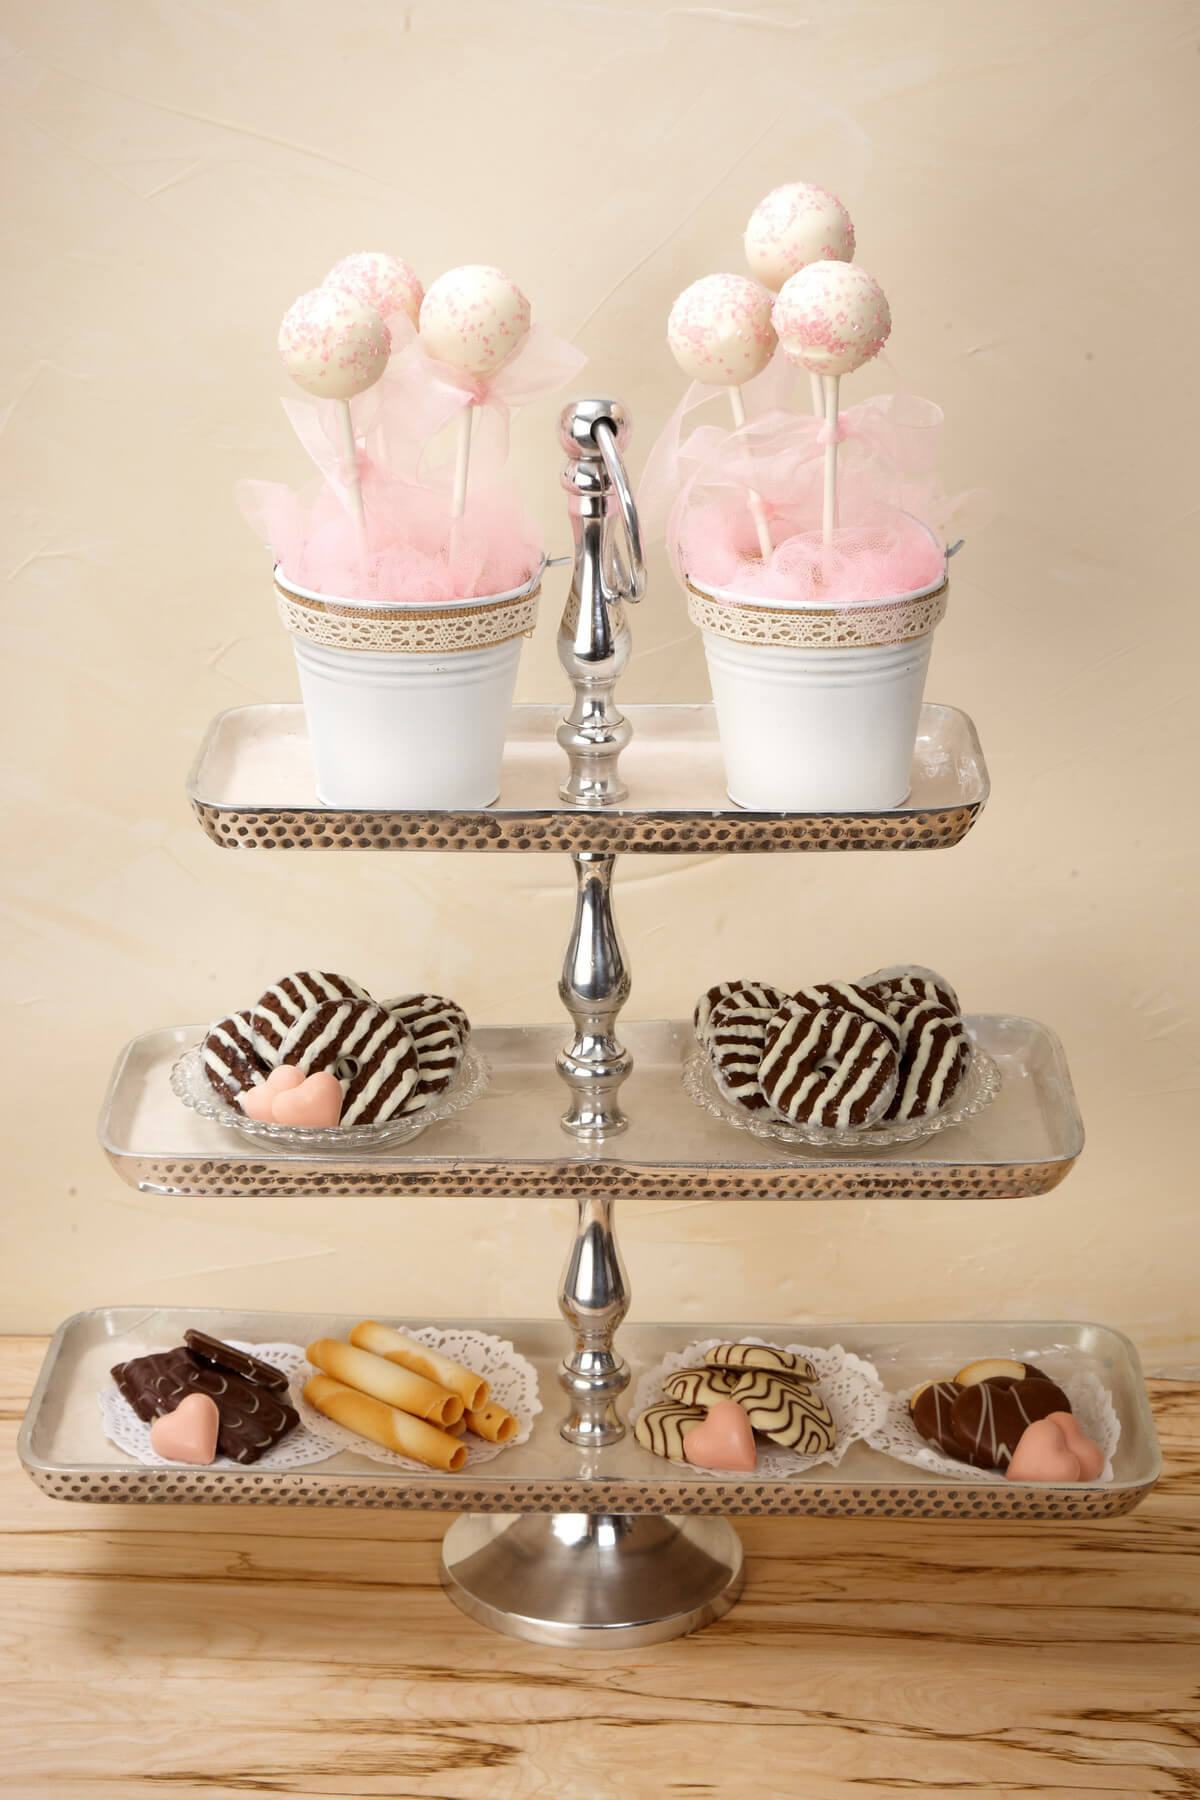 3 Tier Metal Fruit Stand